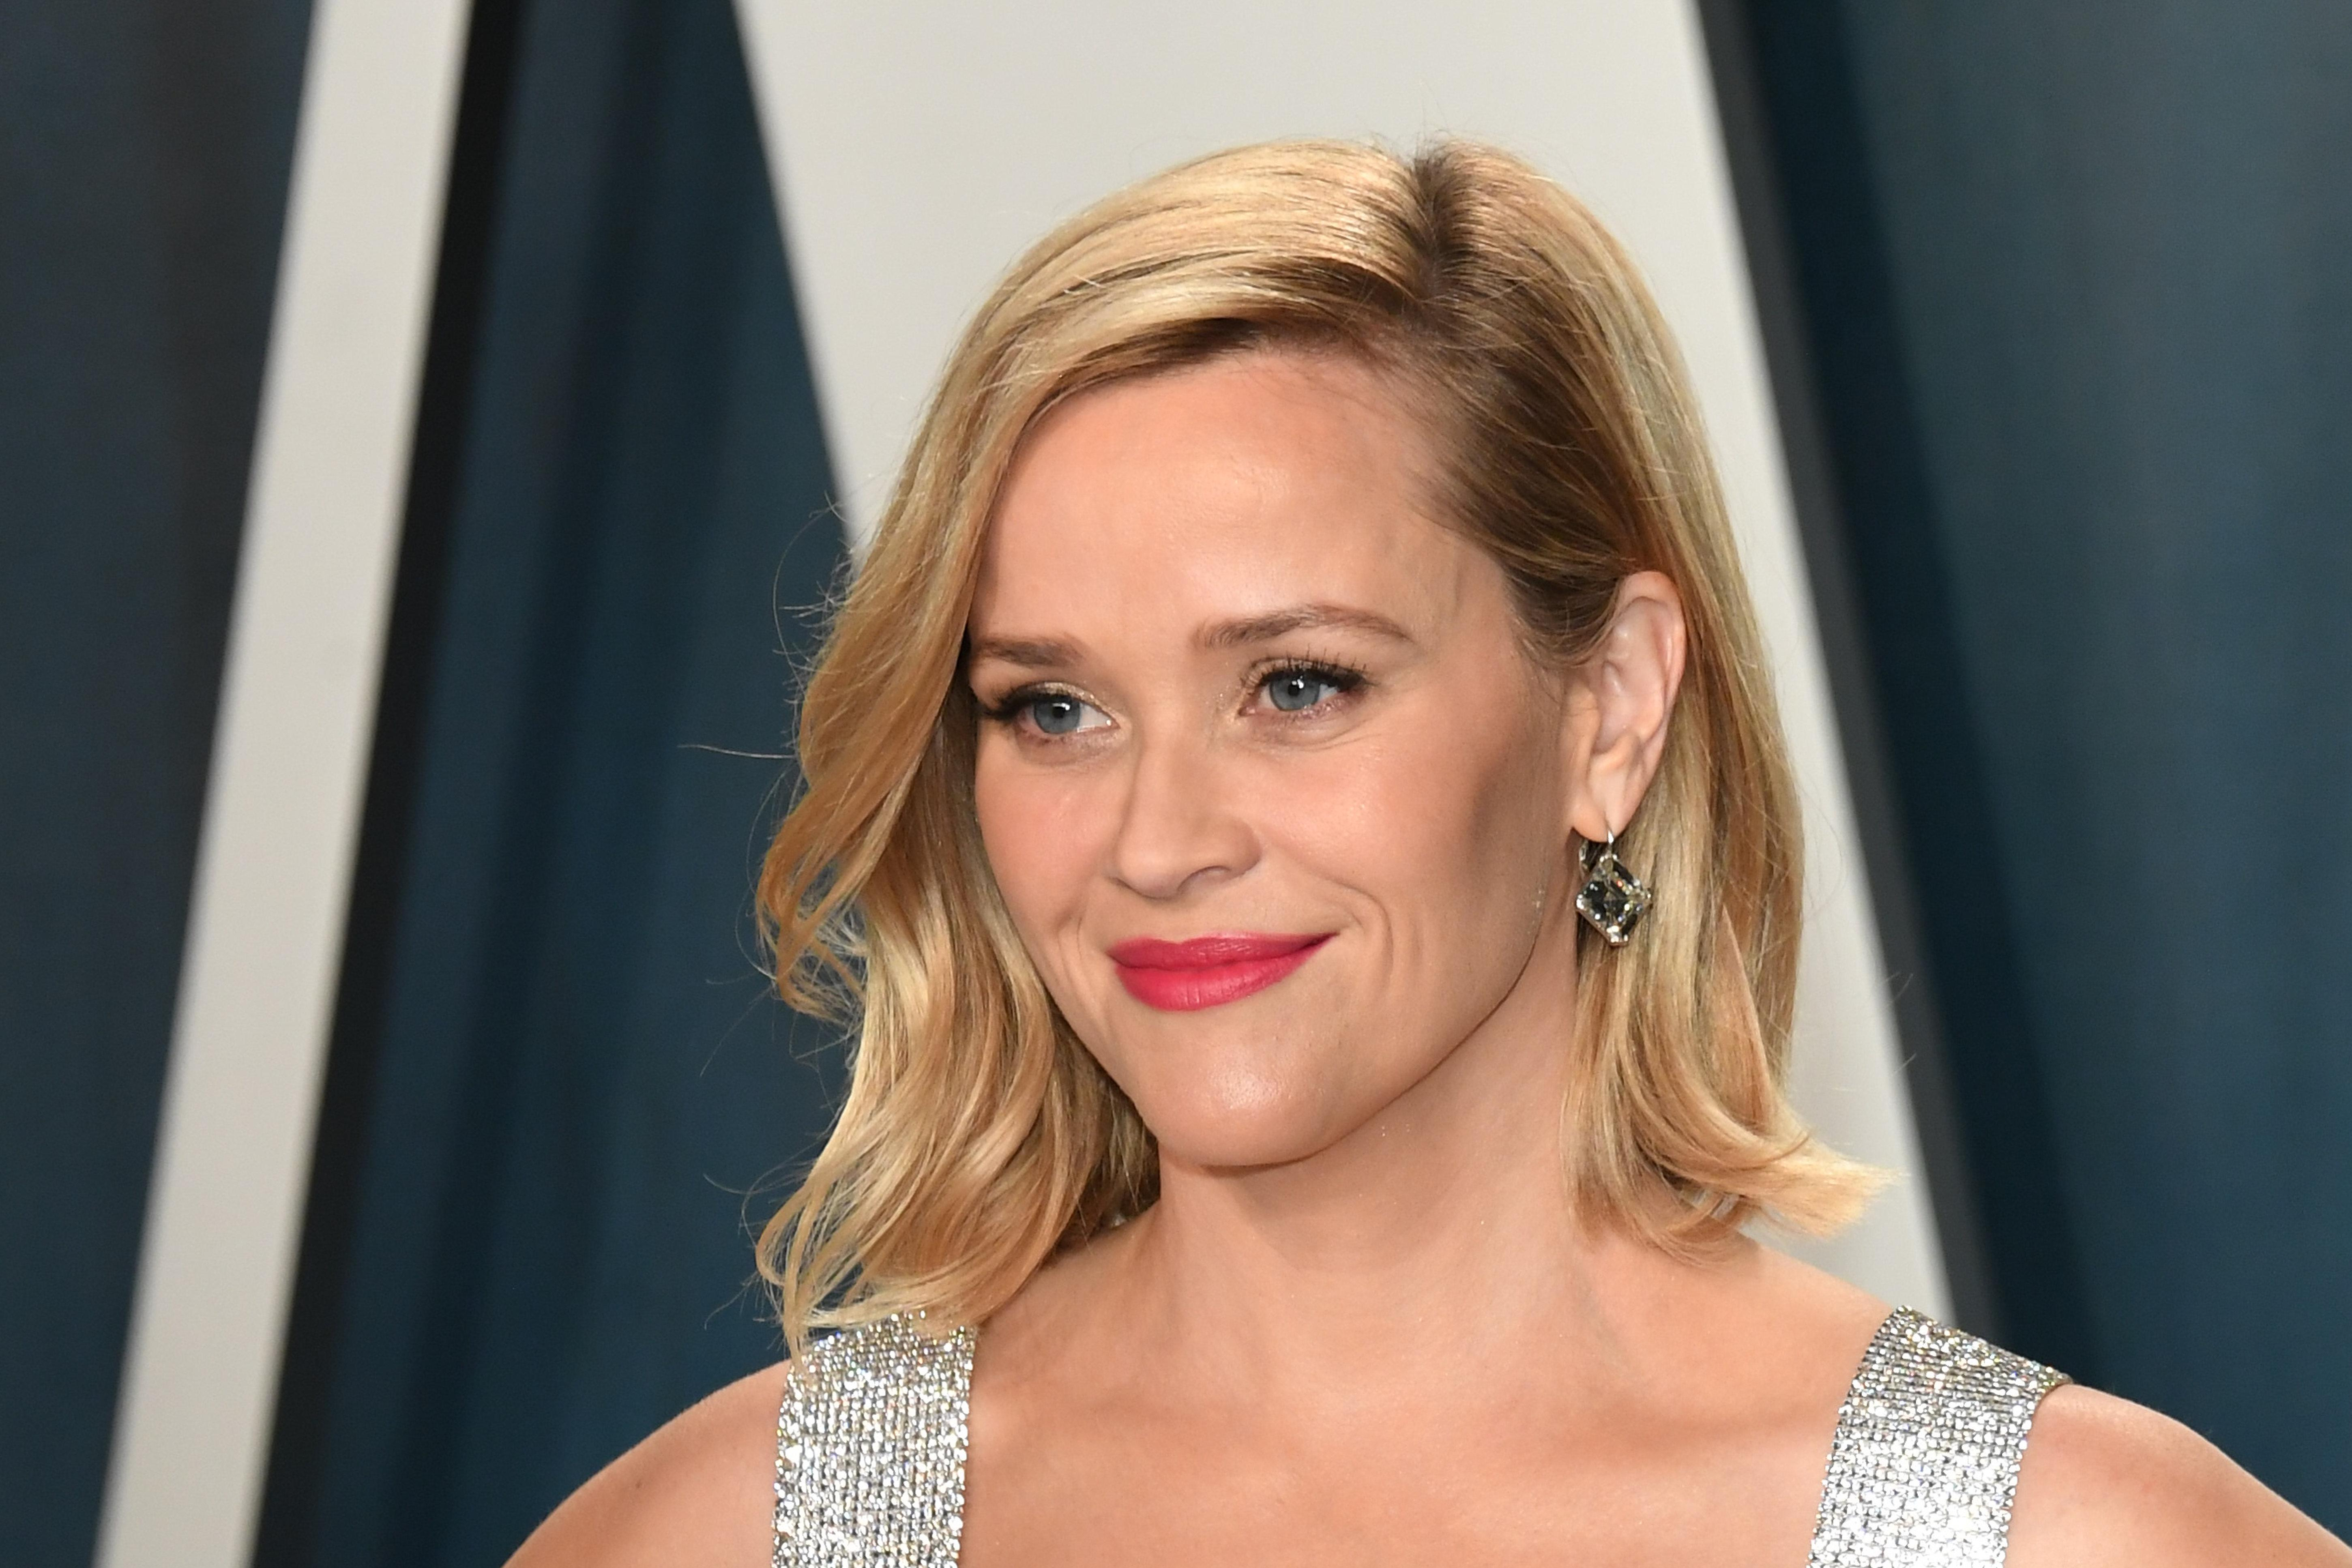 Reese Witherspoon's clothing brand is sending teachers free dresses to show 'a little extra love right now'